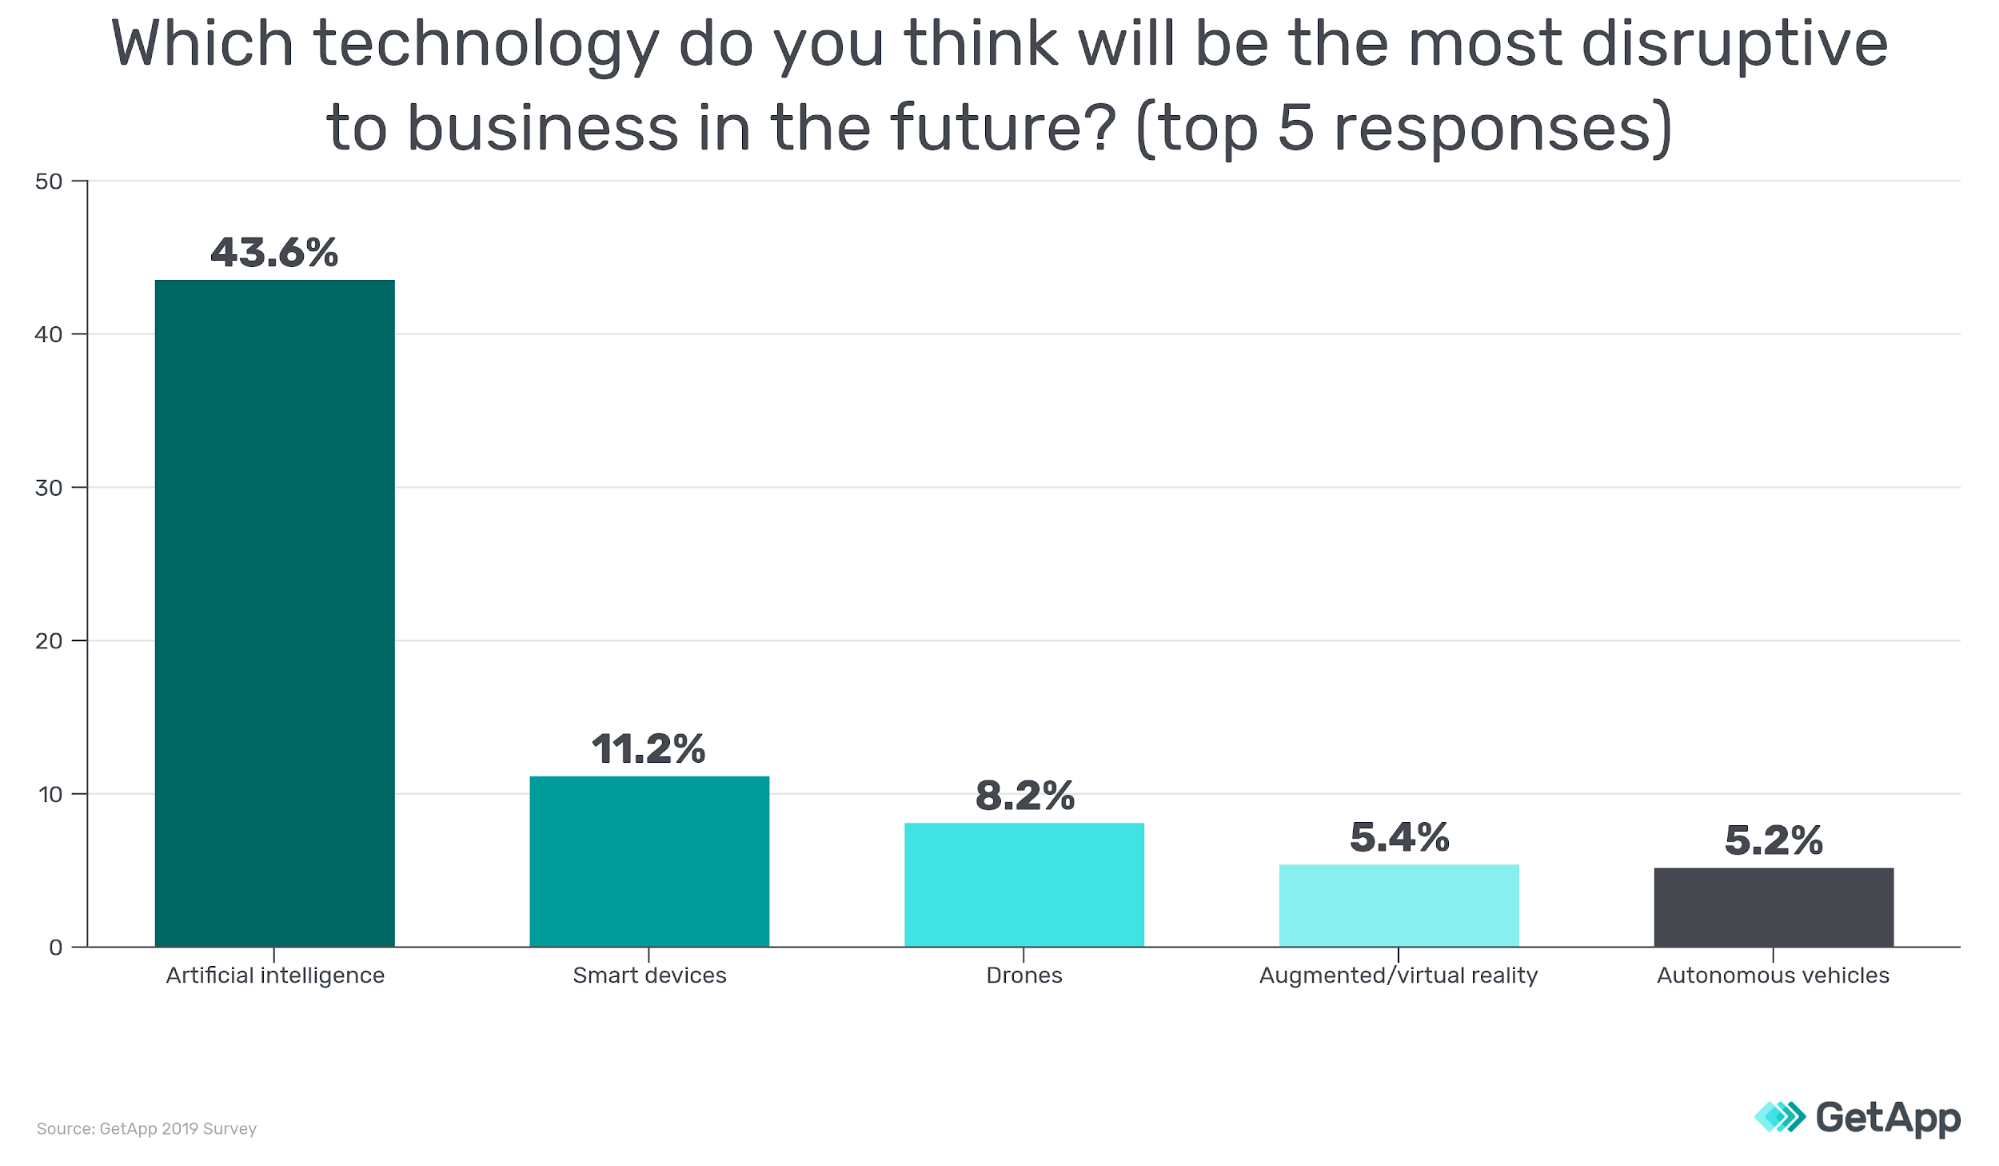 Survey showing which technology respondents think will be most disruptive to business in the future